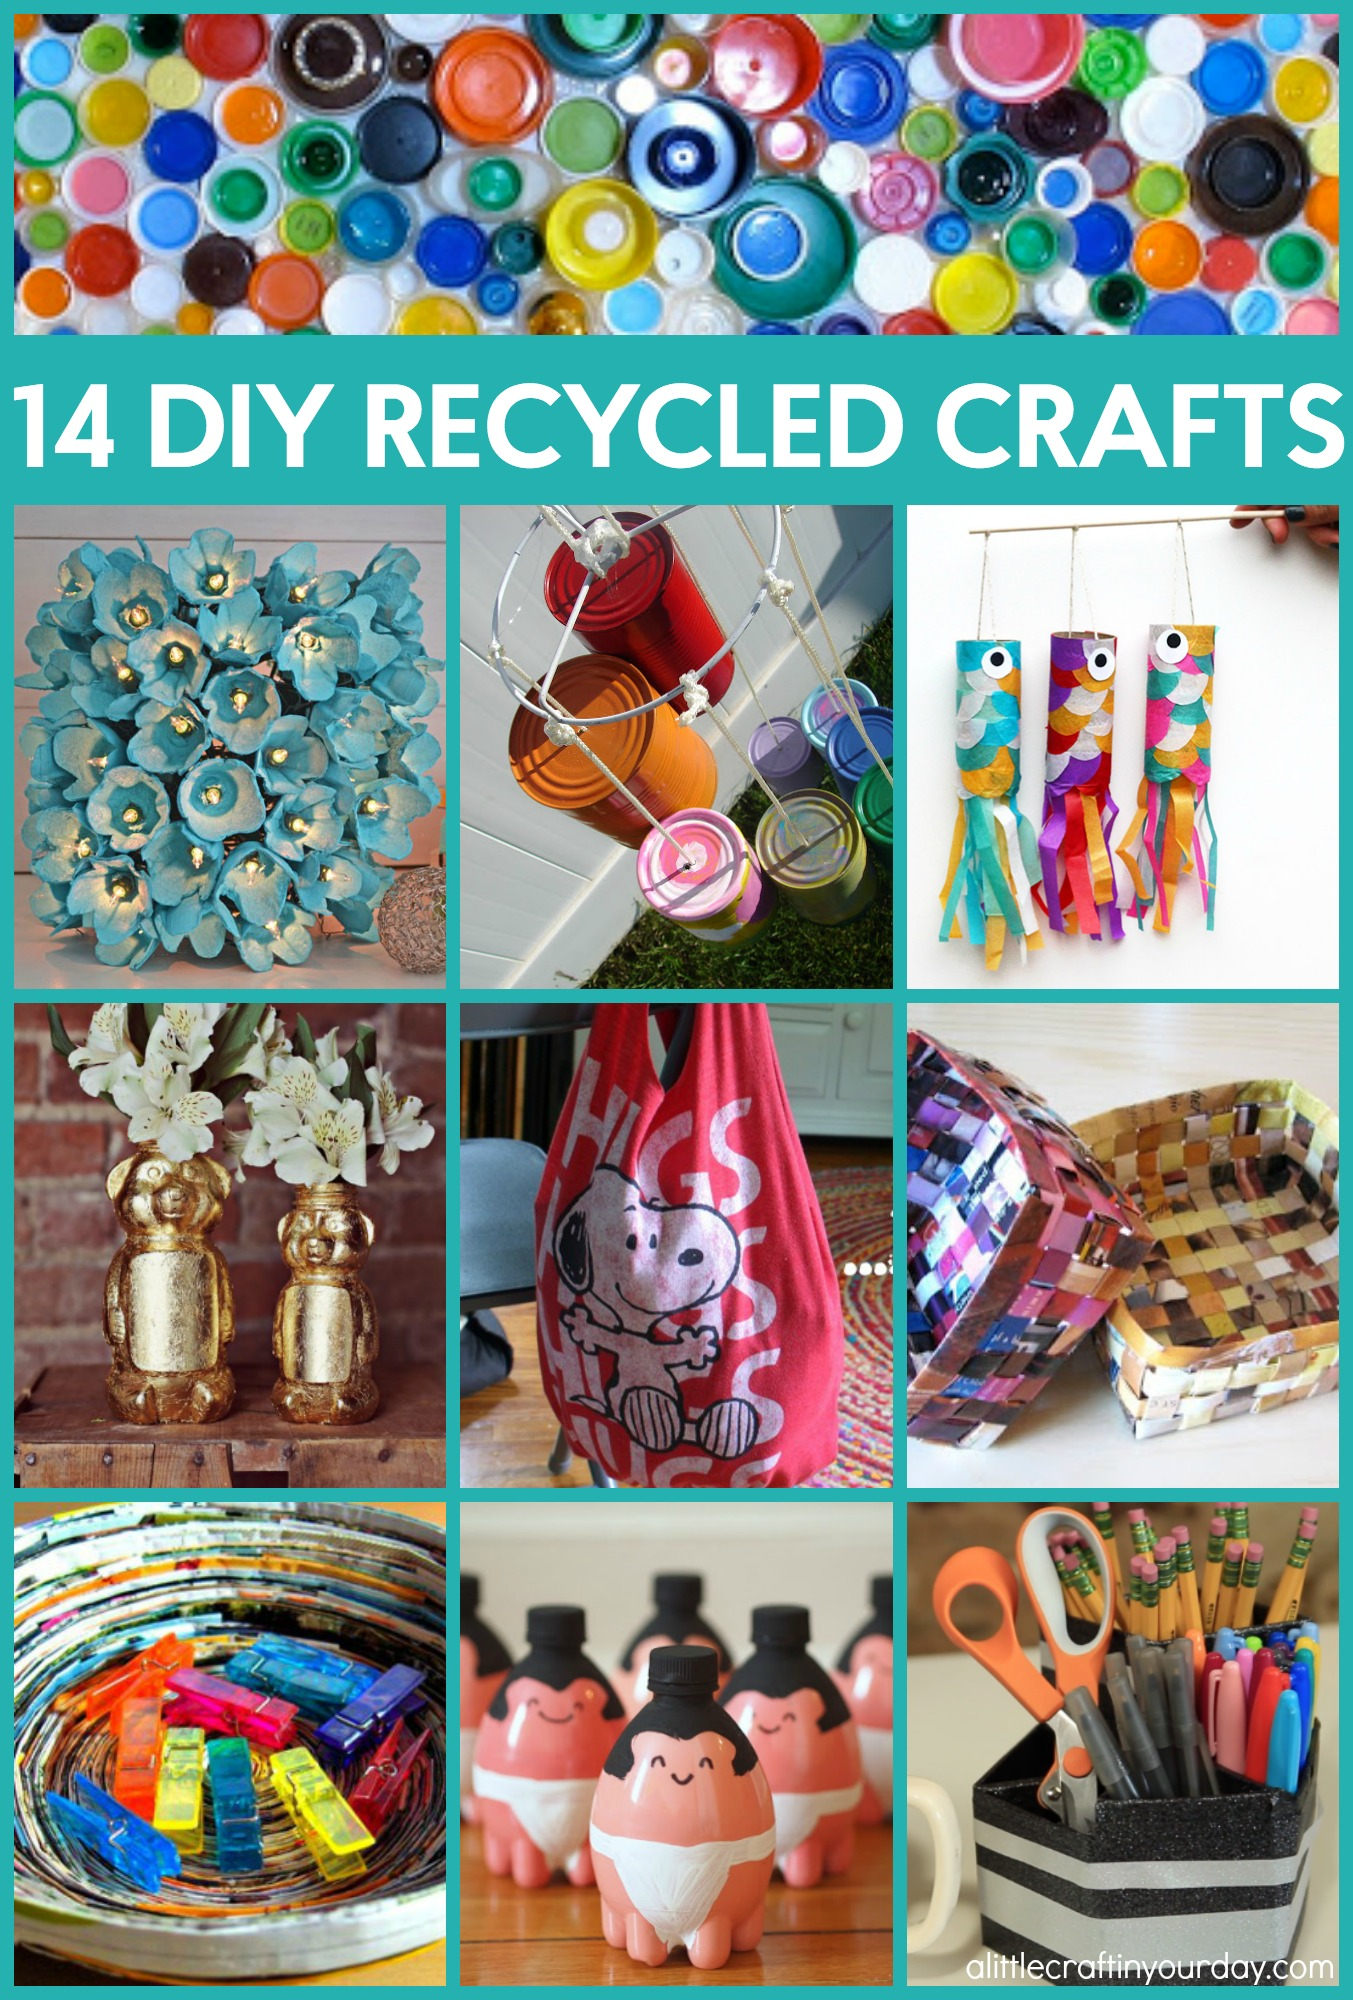 14 DIY Recycled Crafts That Will Help The Earth